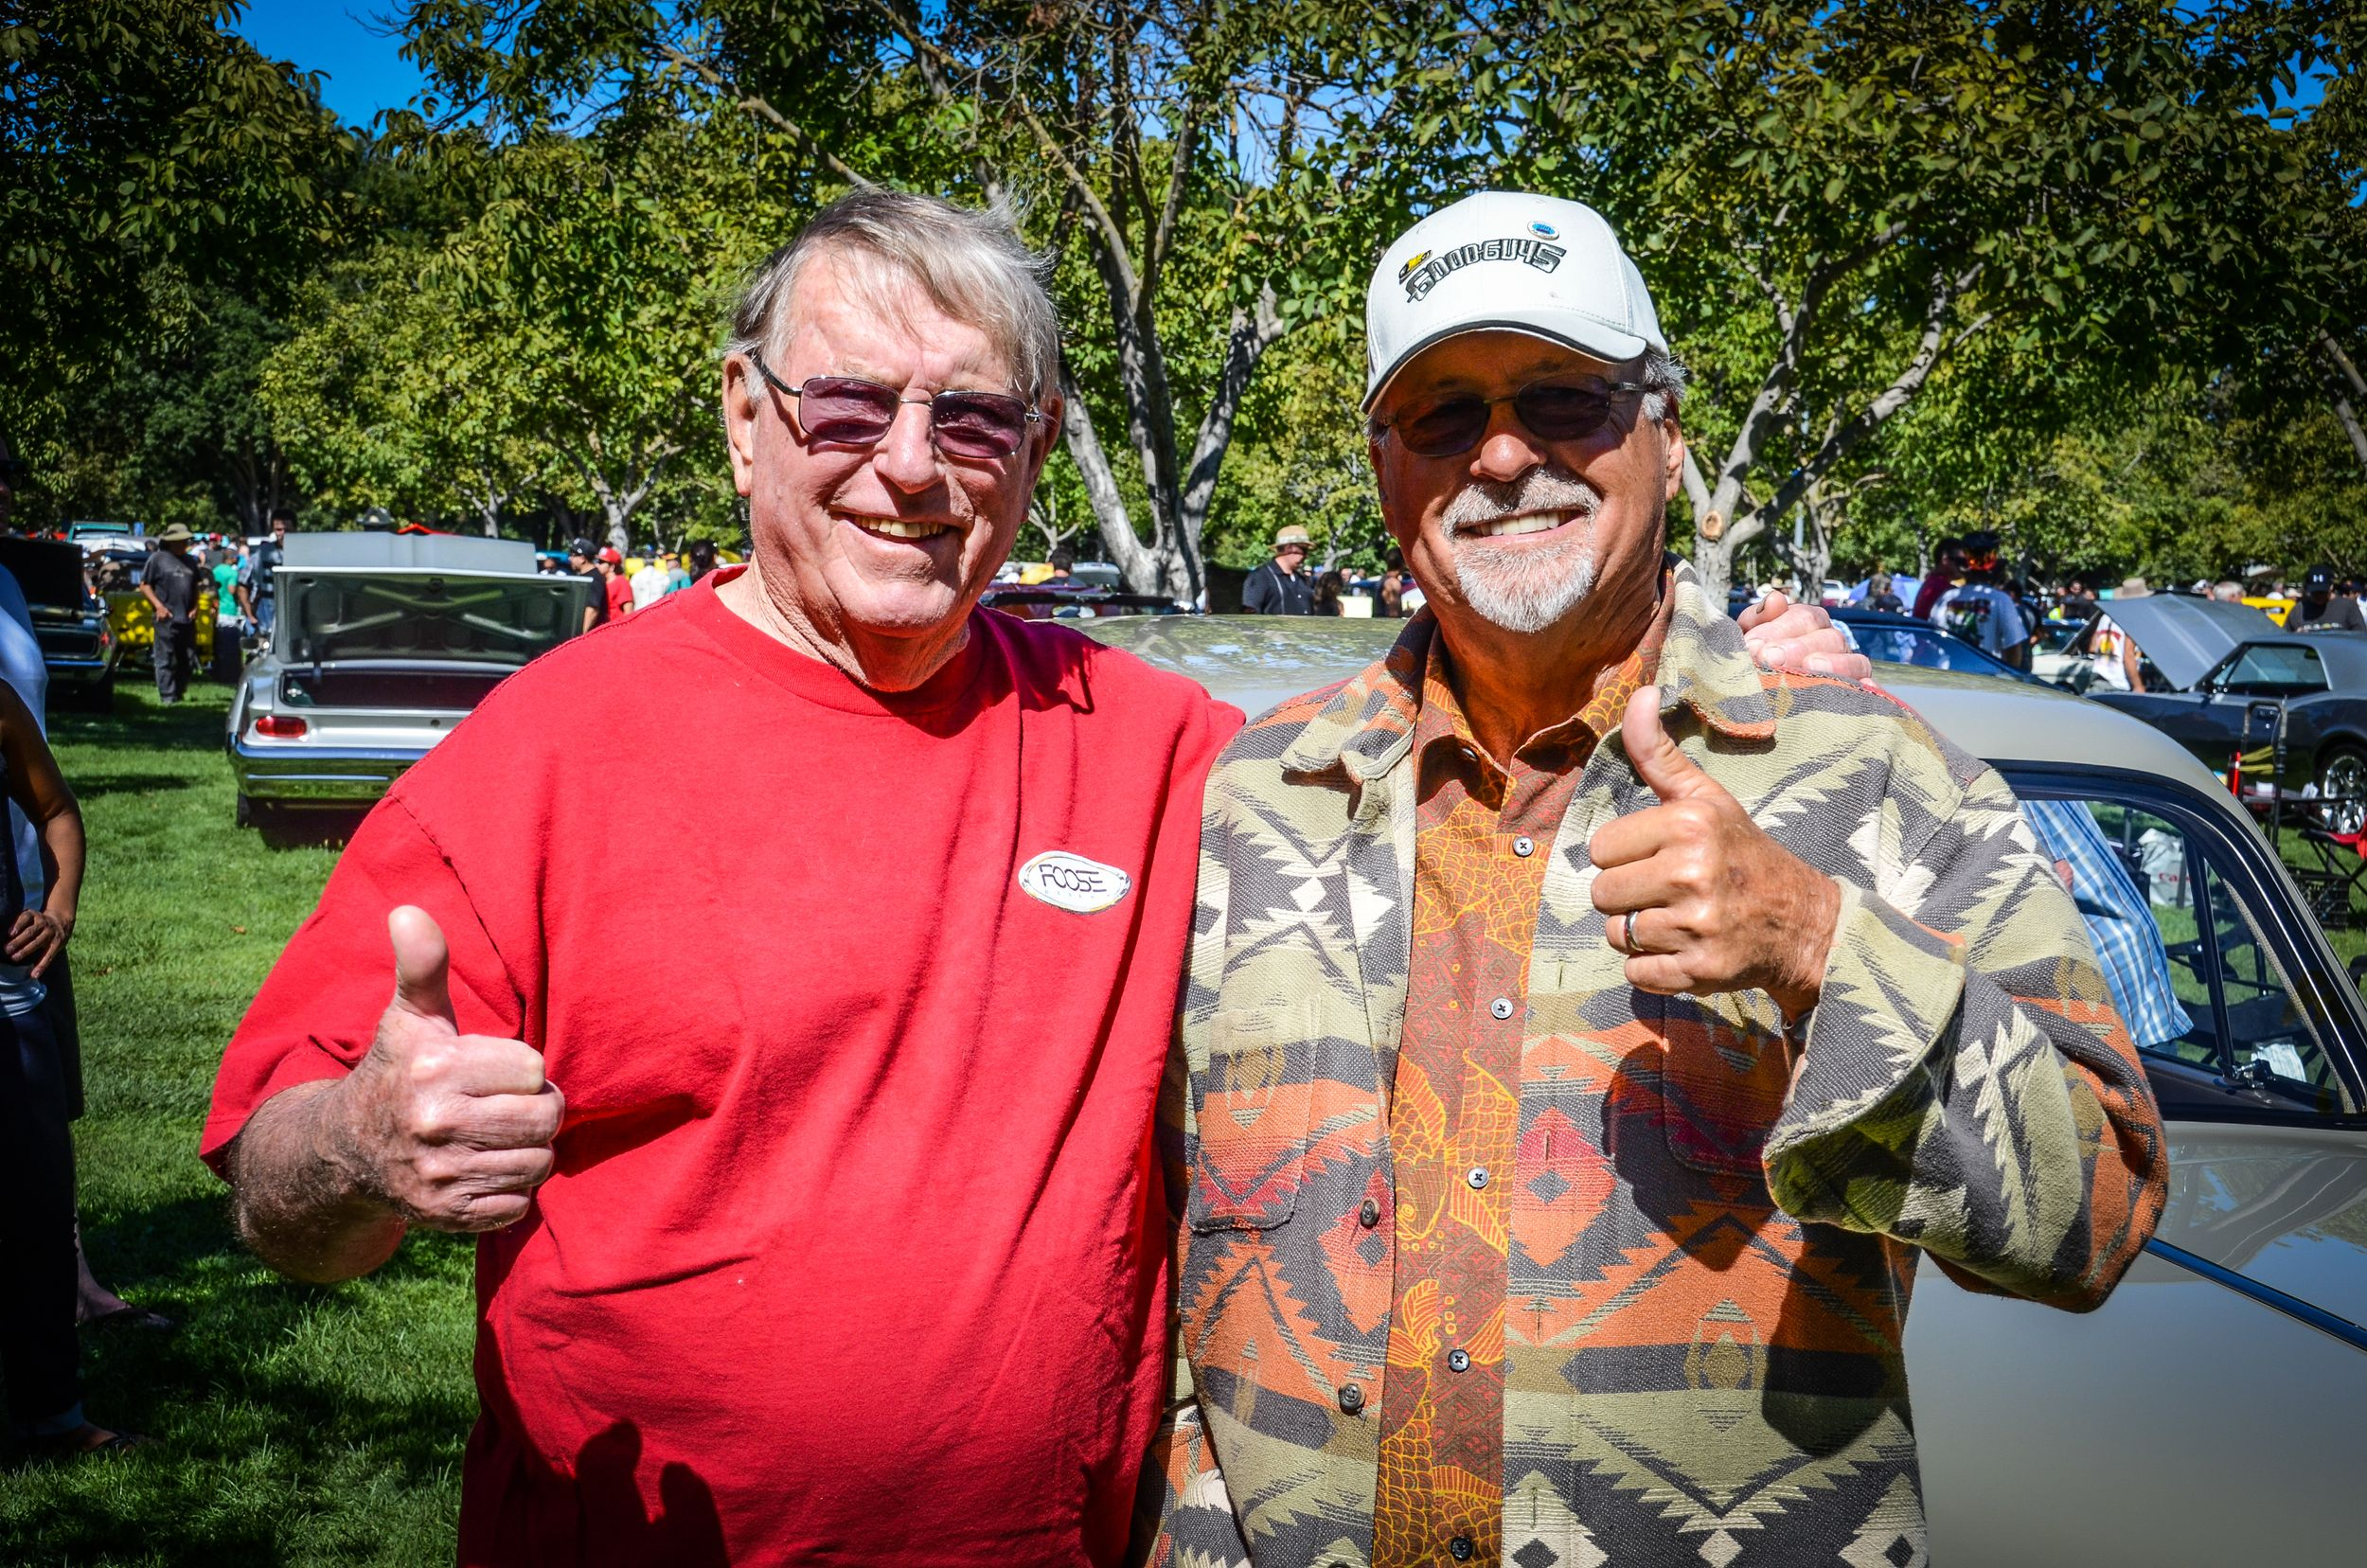 Sam Foose (L) with Goodguys founder Gary Meadors in 2014. Photo courtesy Fuel Curve.